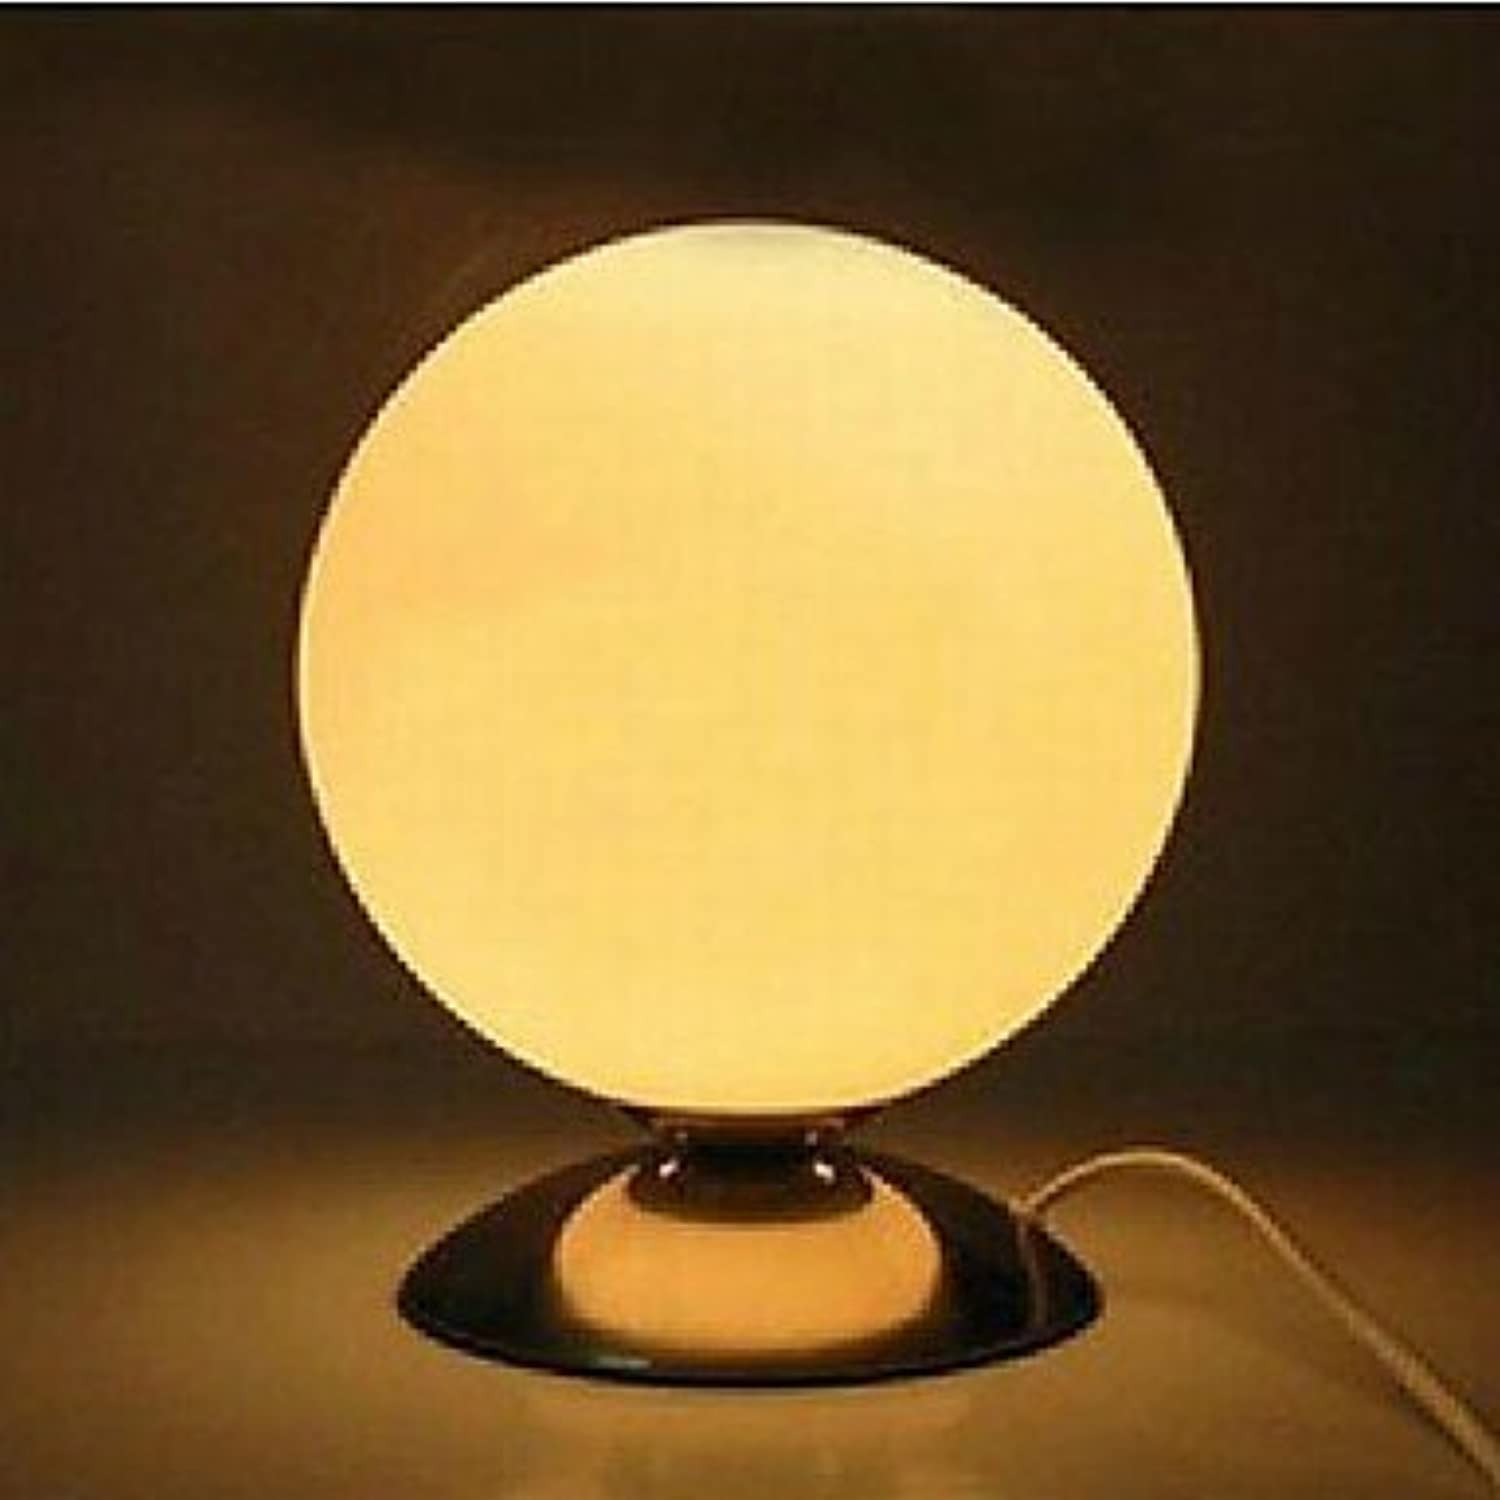 Makenier uk- Fashion Home-Dekor-Lampe Adjustable Table Lamp Licht Schlafzimmer B00QNEPZRU   | Haltbarkeit